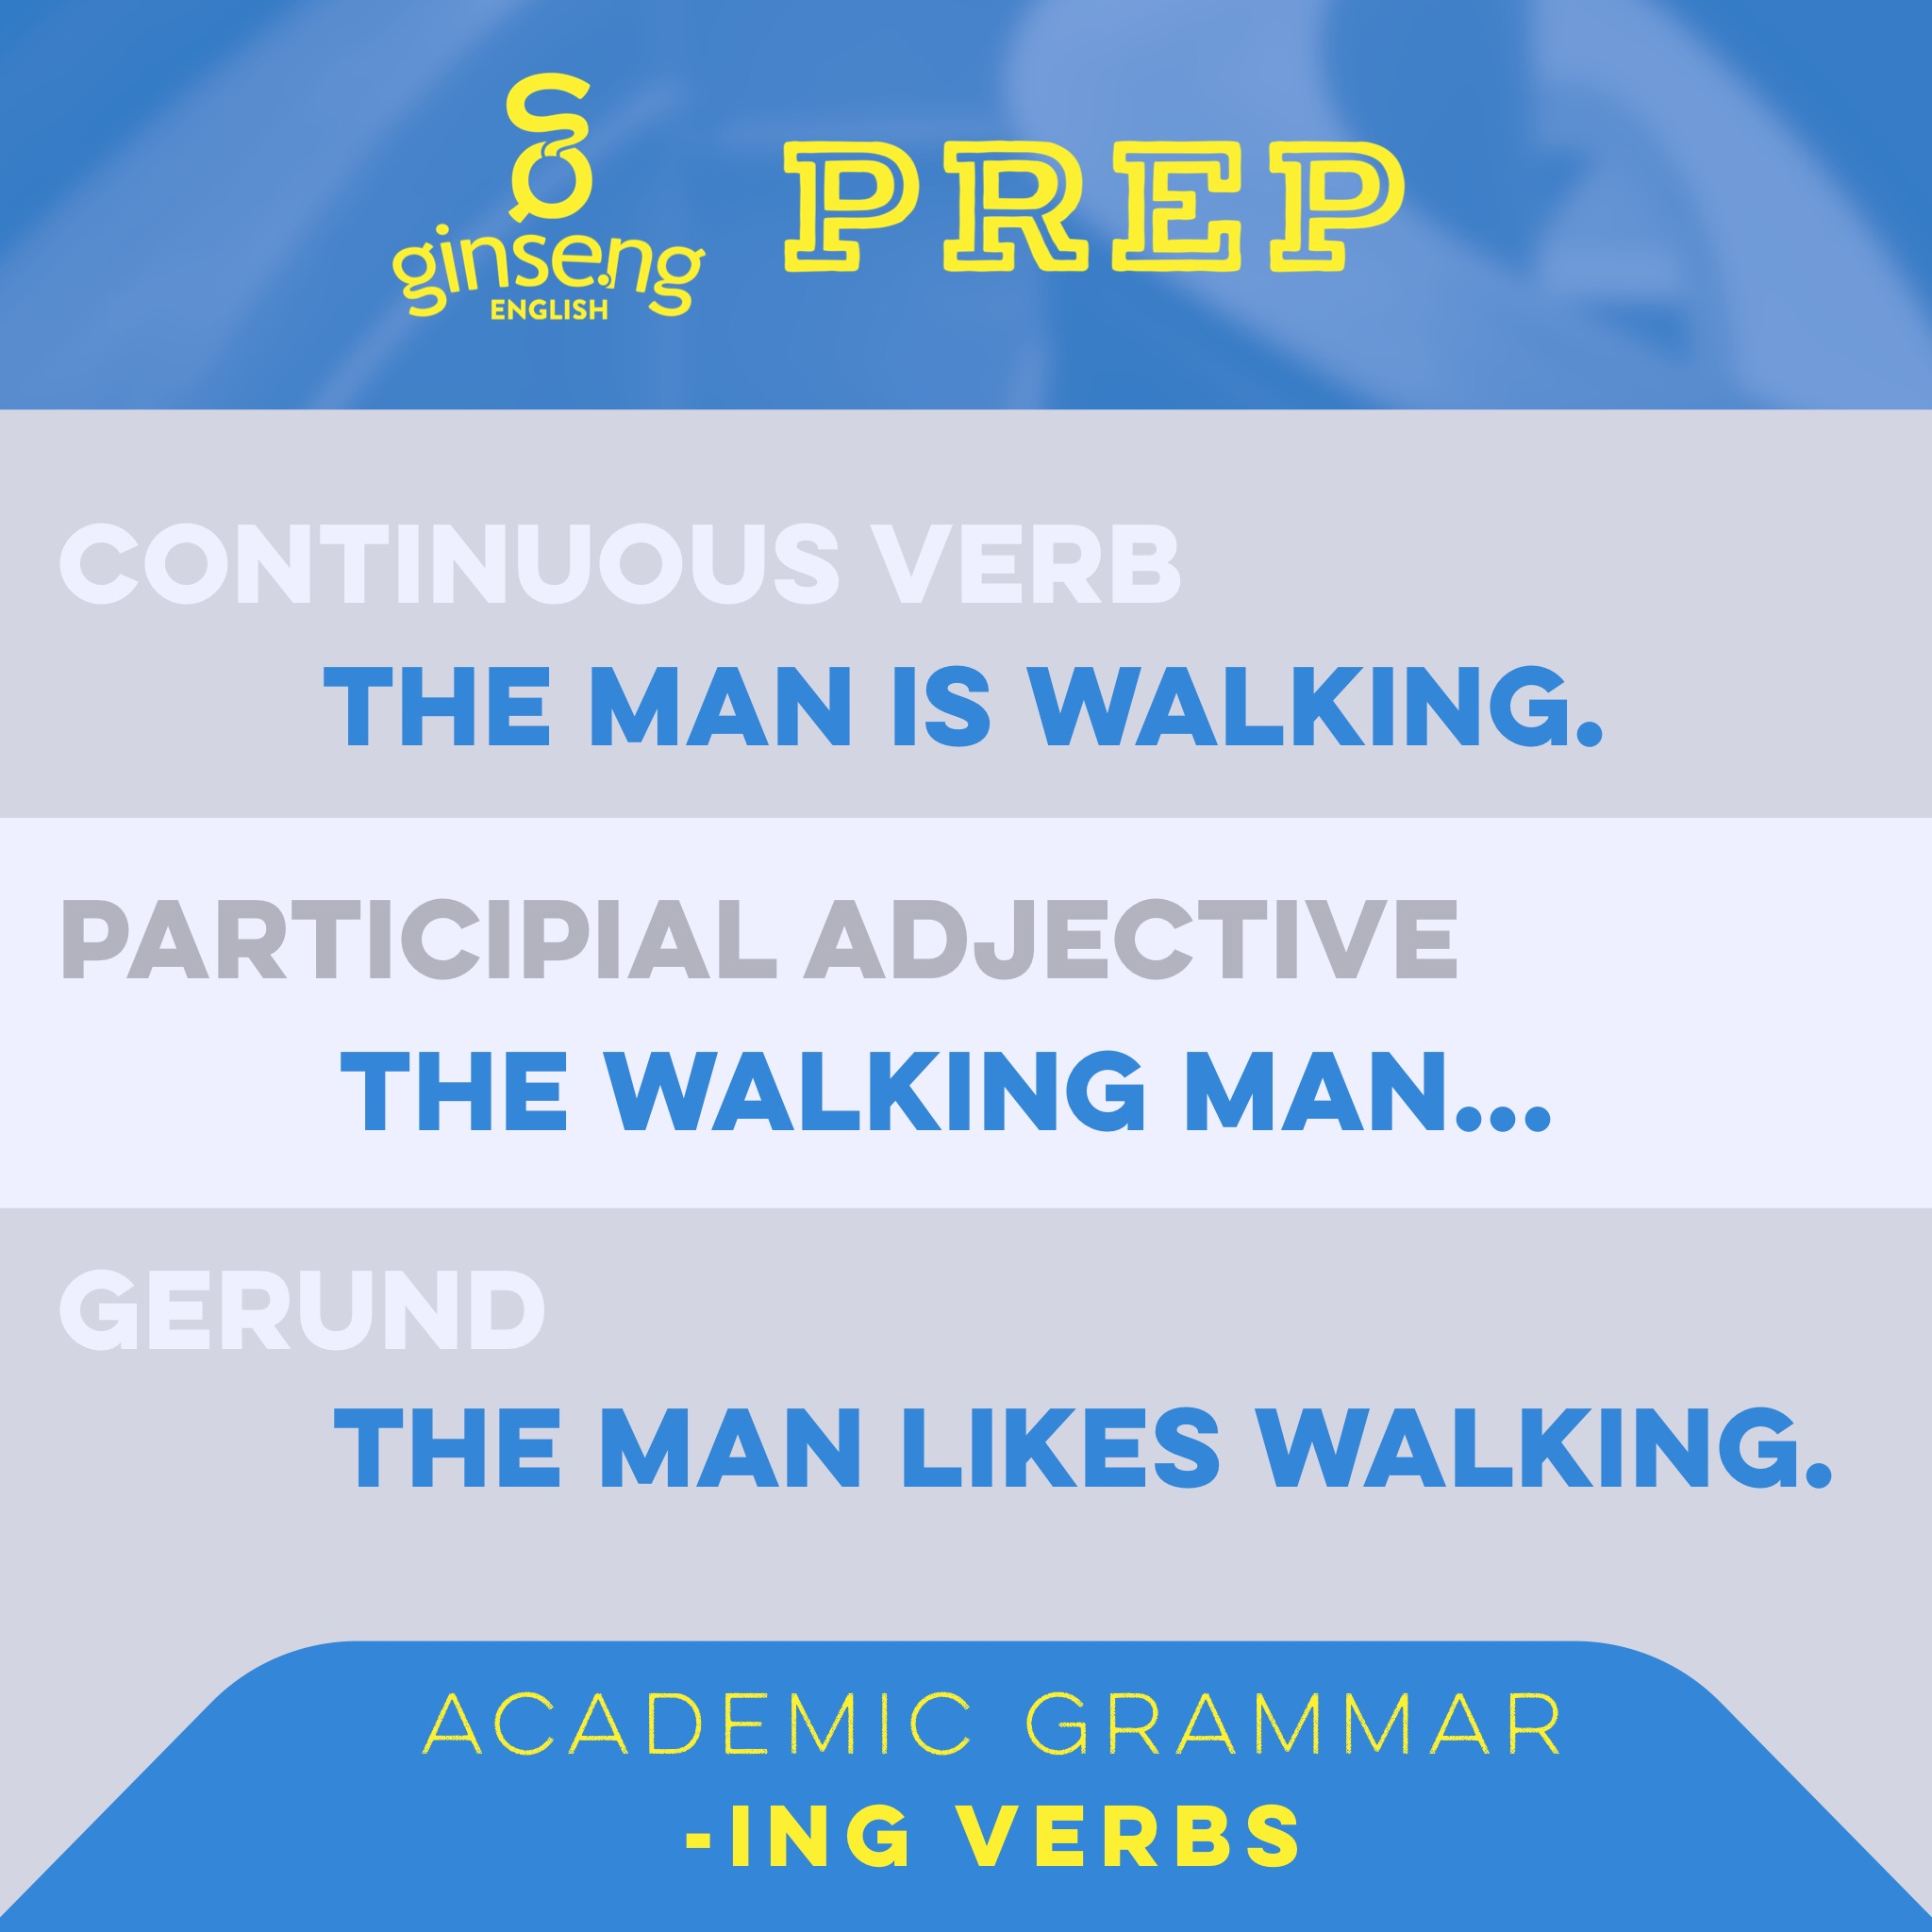 Three types of -ing verb